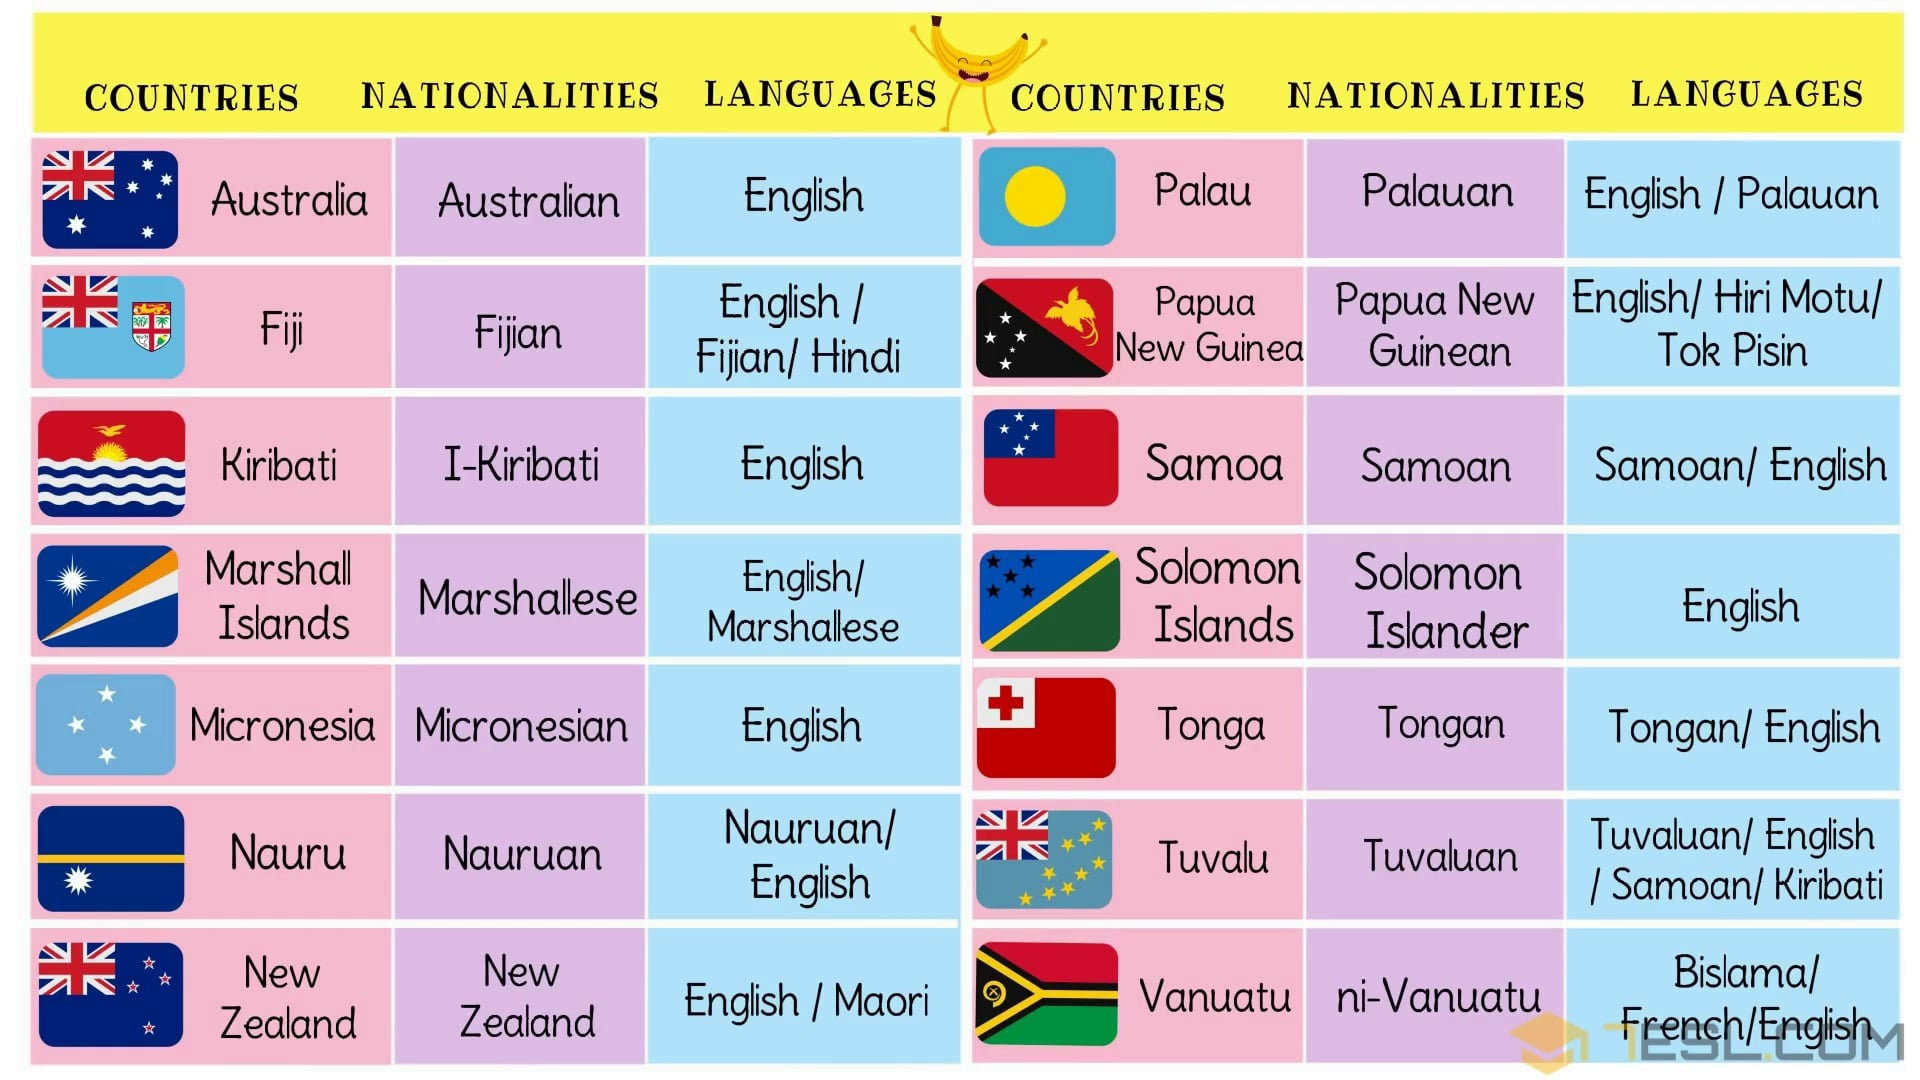 Oceania Countries with Languages, Nationalities & Flags